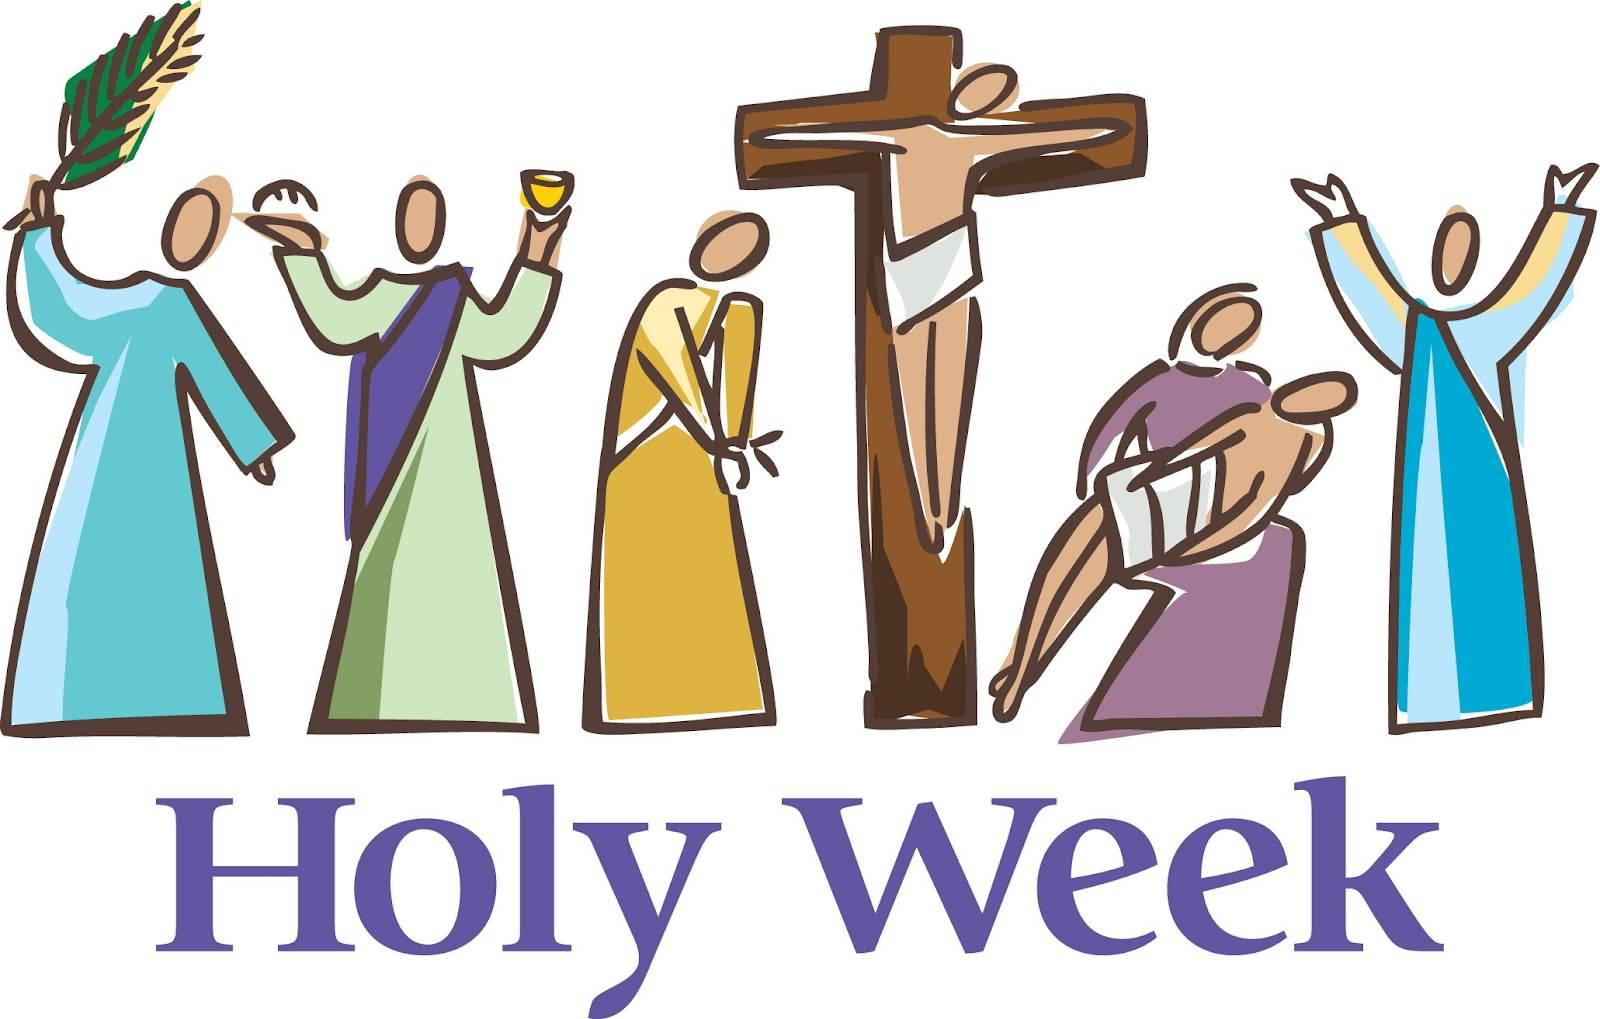 50 Beautiful Holy Week Wish Pictures And Images